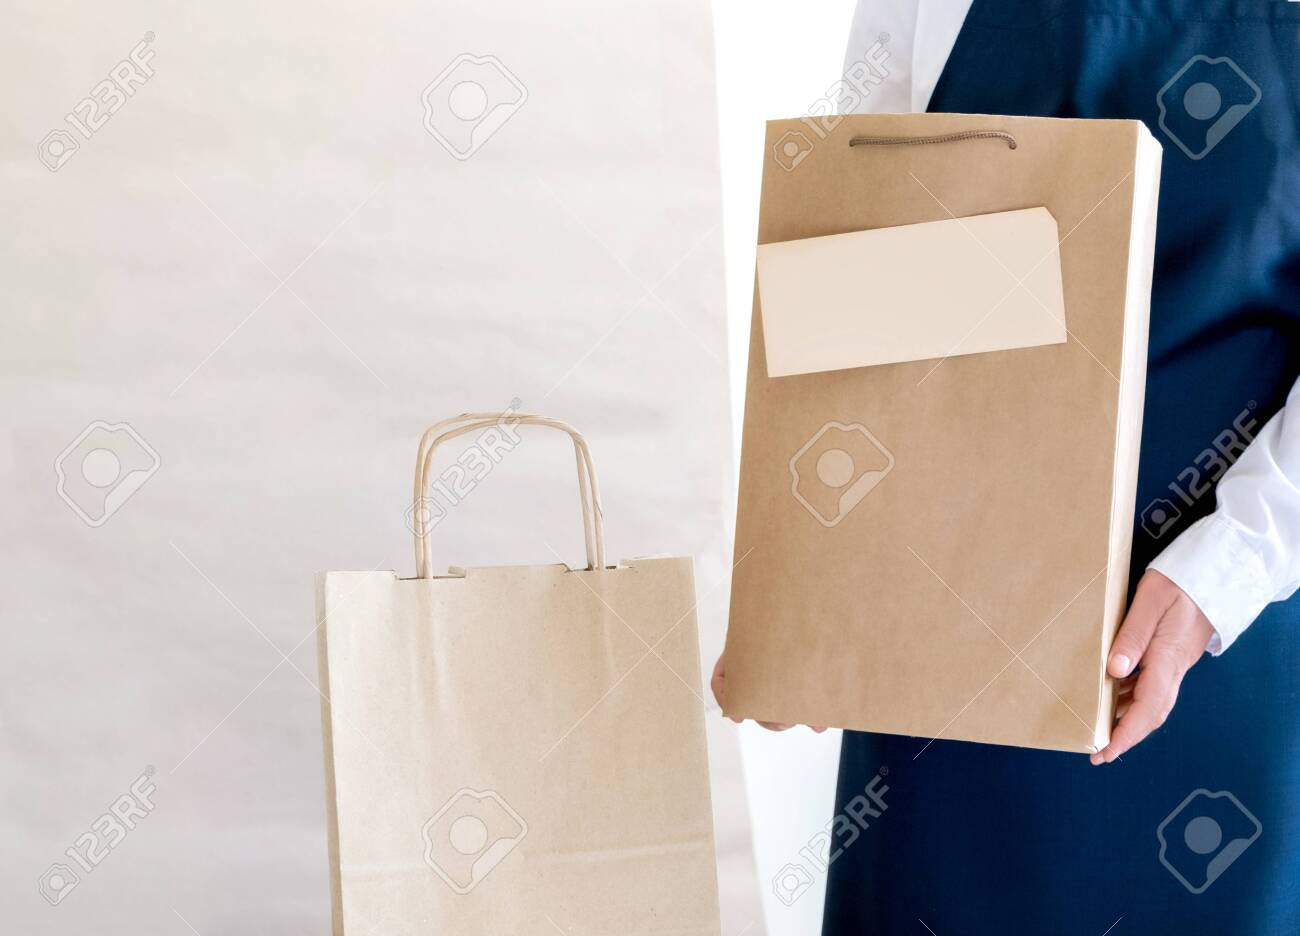 A lot of Craft Paper Bags and Boxes stay near by Packer. Worker of Delivery Service in Uniform Packing Order for Customer. - 145911024